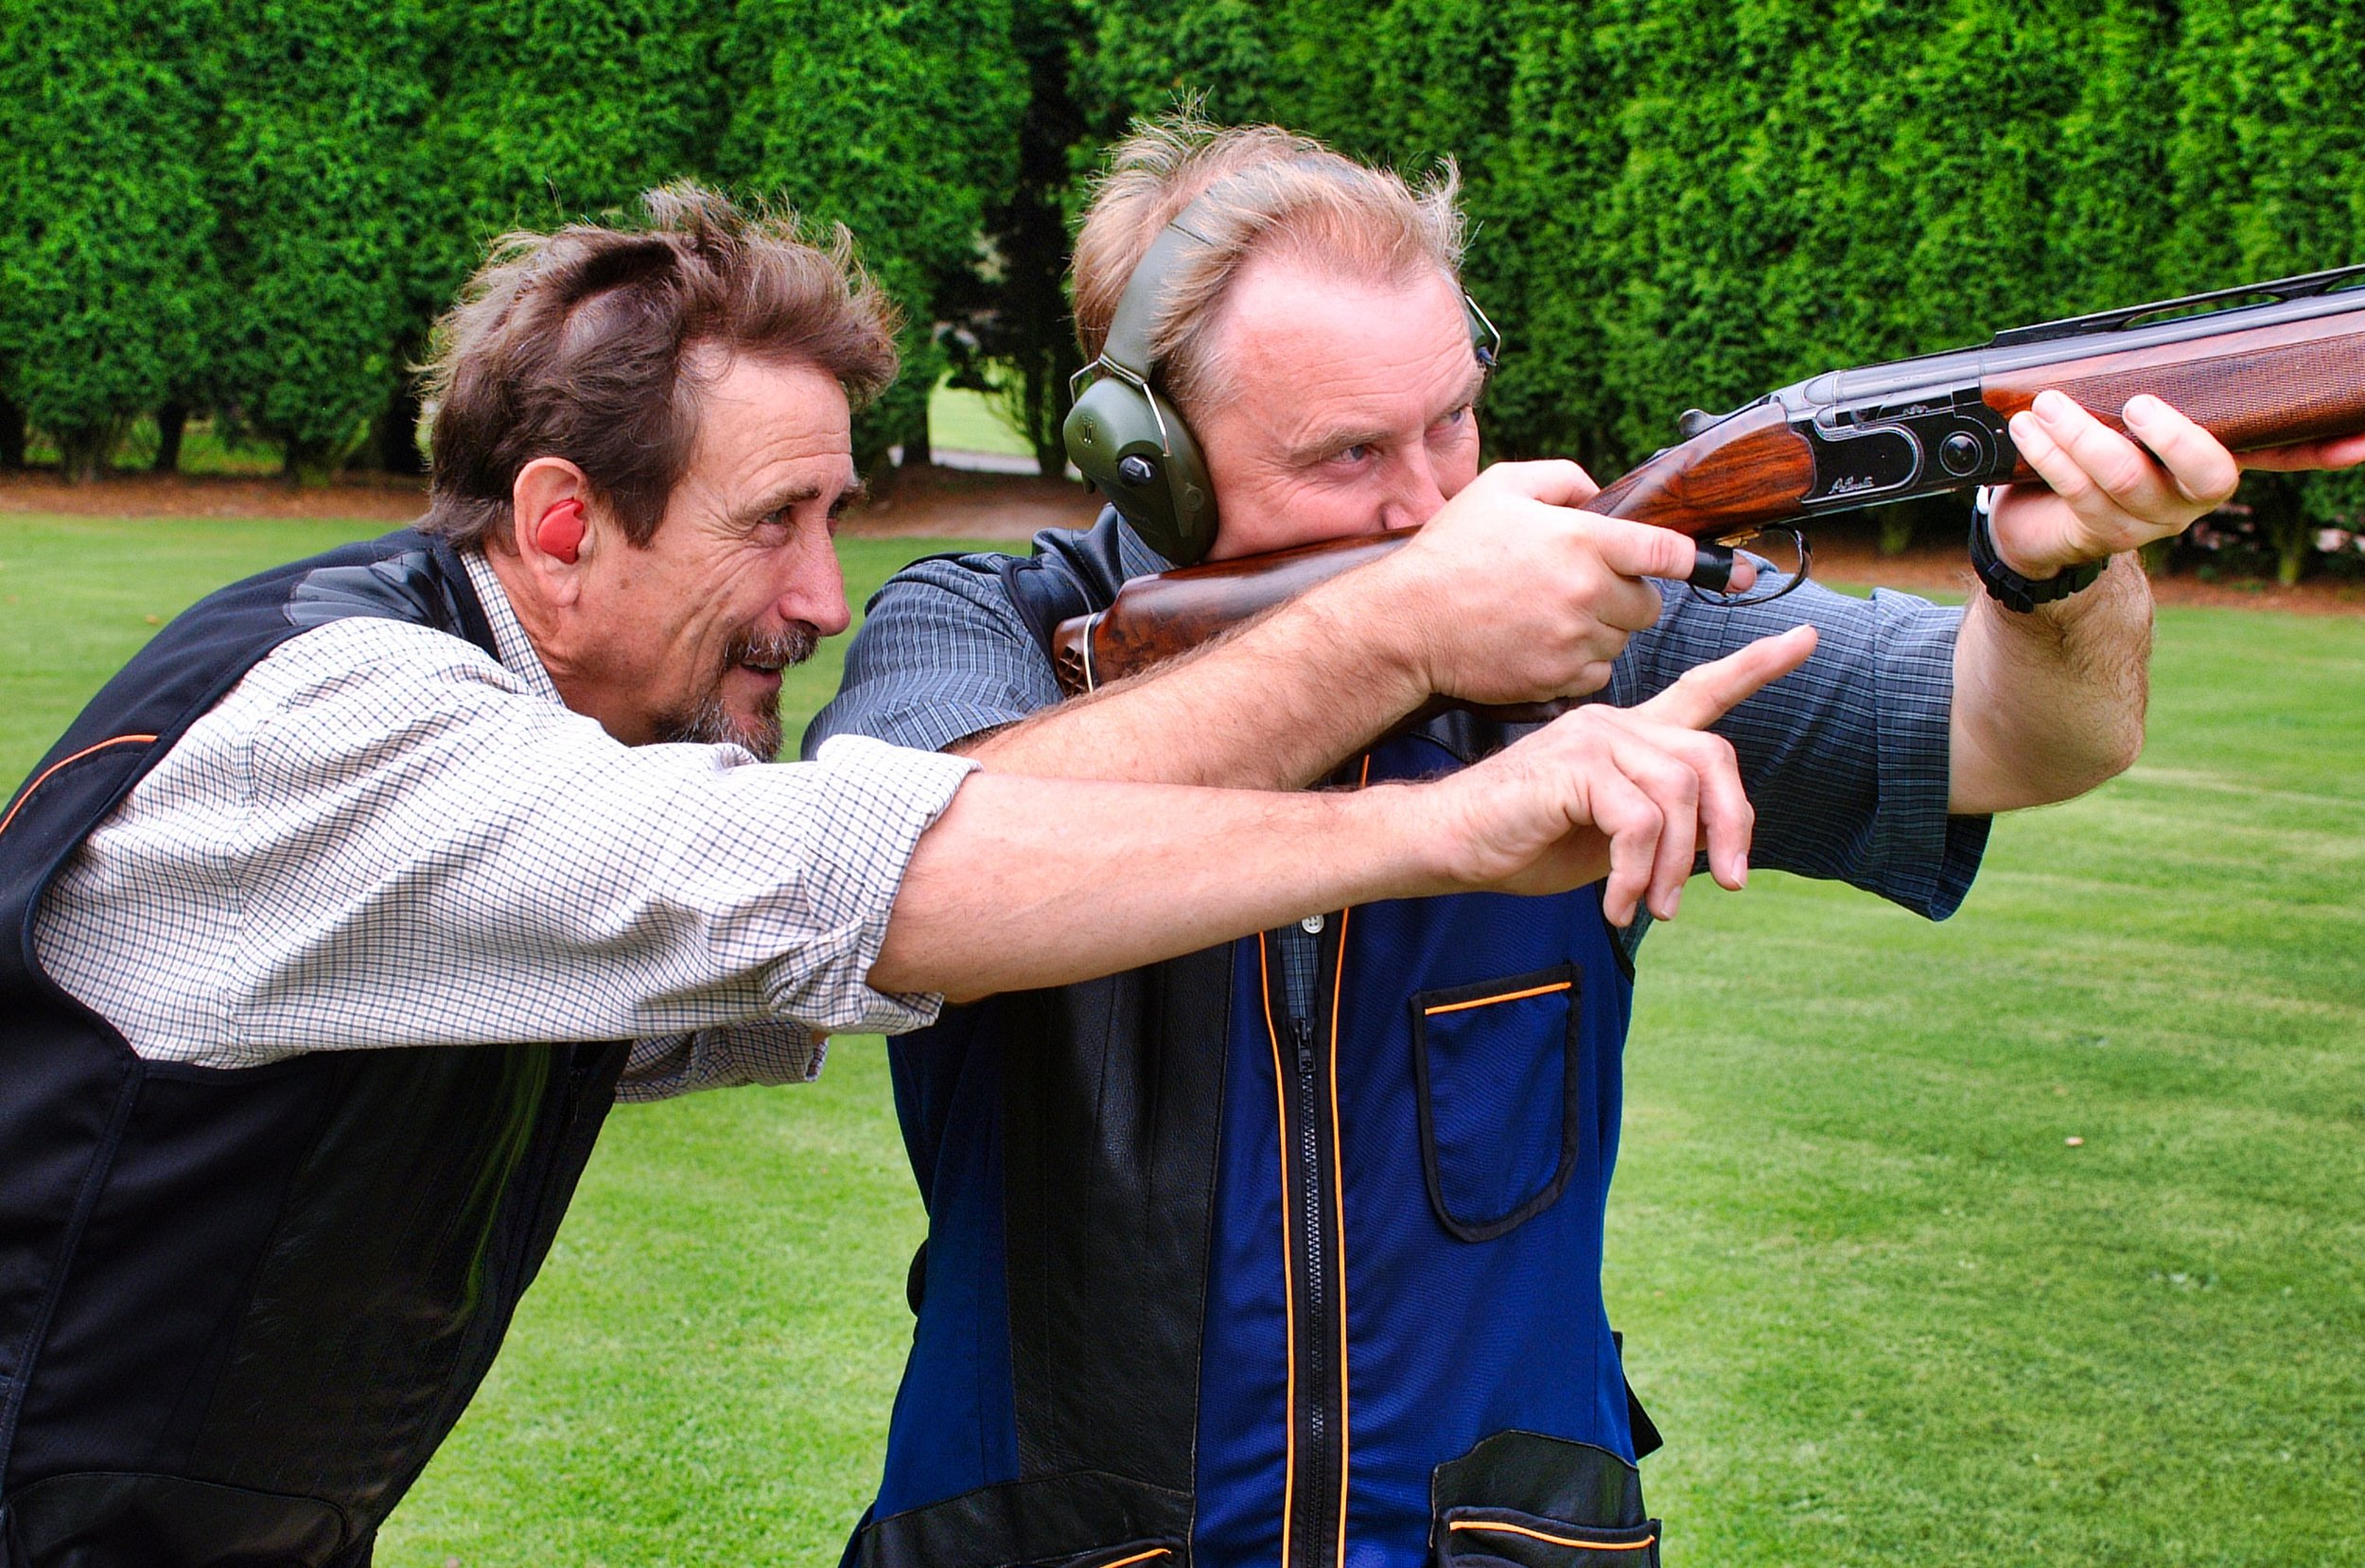 Shooting School - Learn from our team of ProfessionalsFrom Beginner to Competition StandardAny age from 12 and upwards